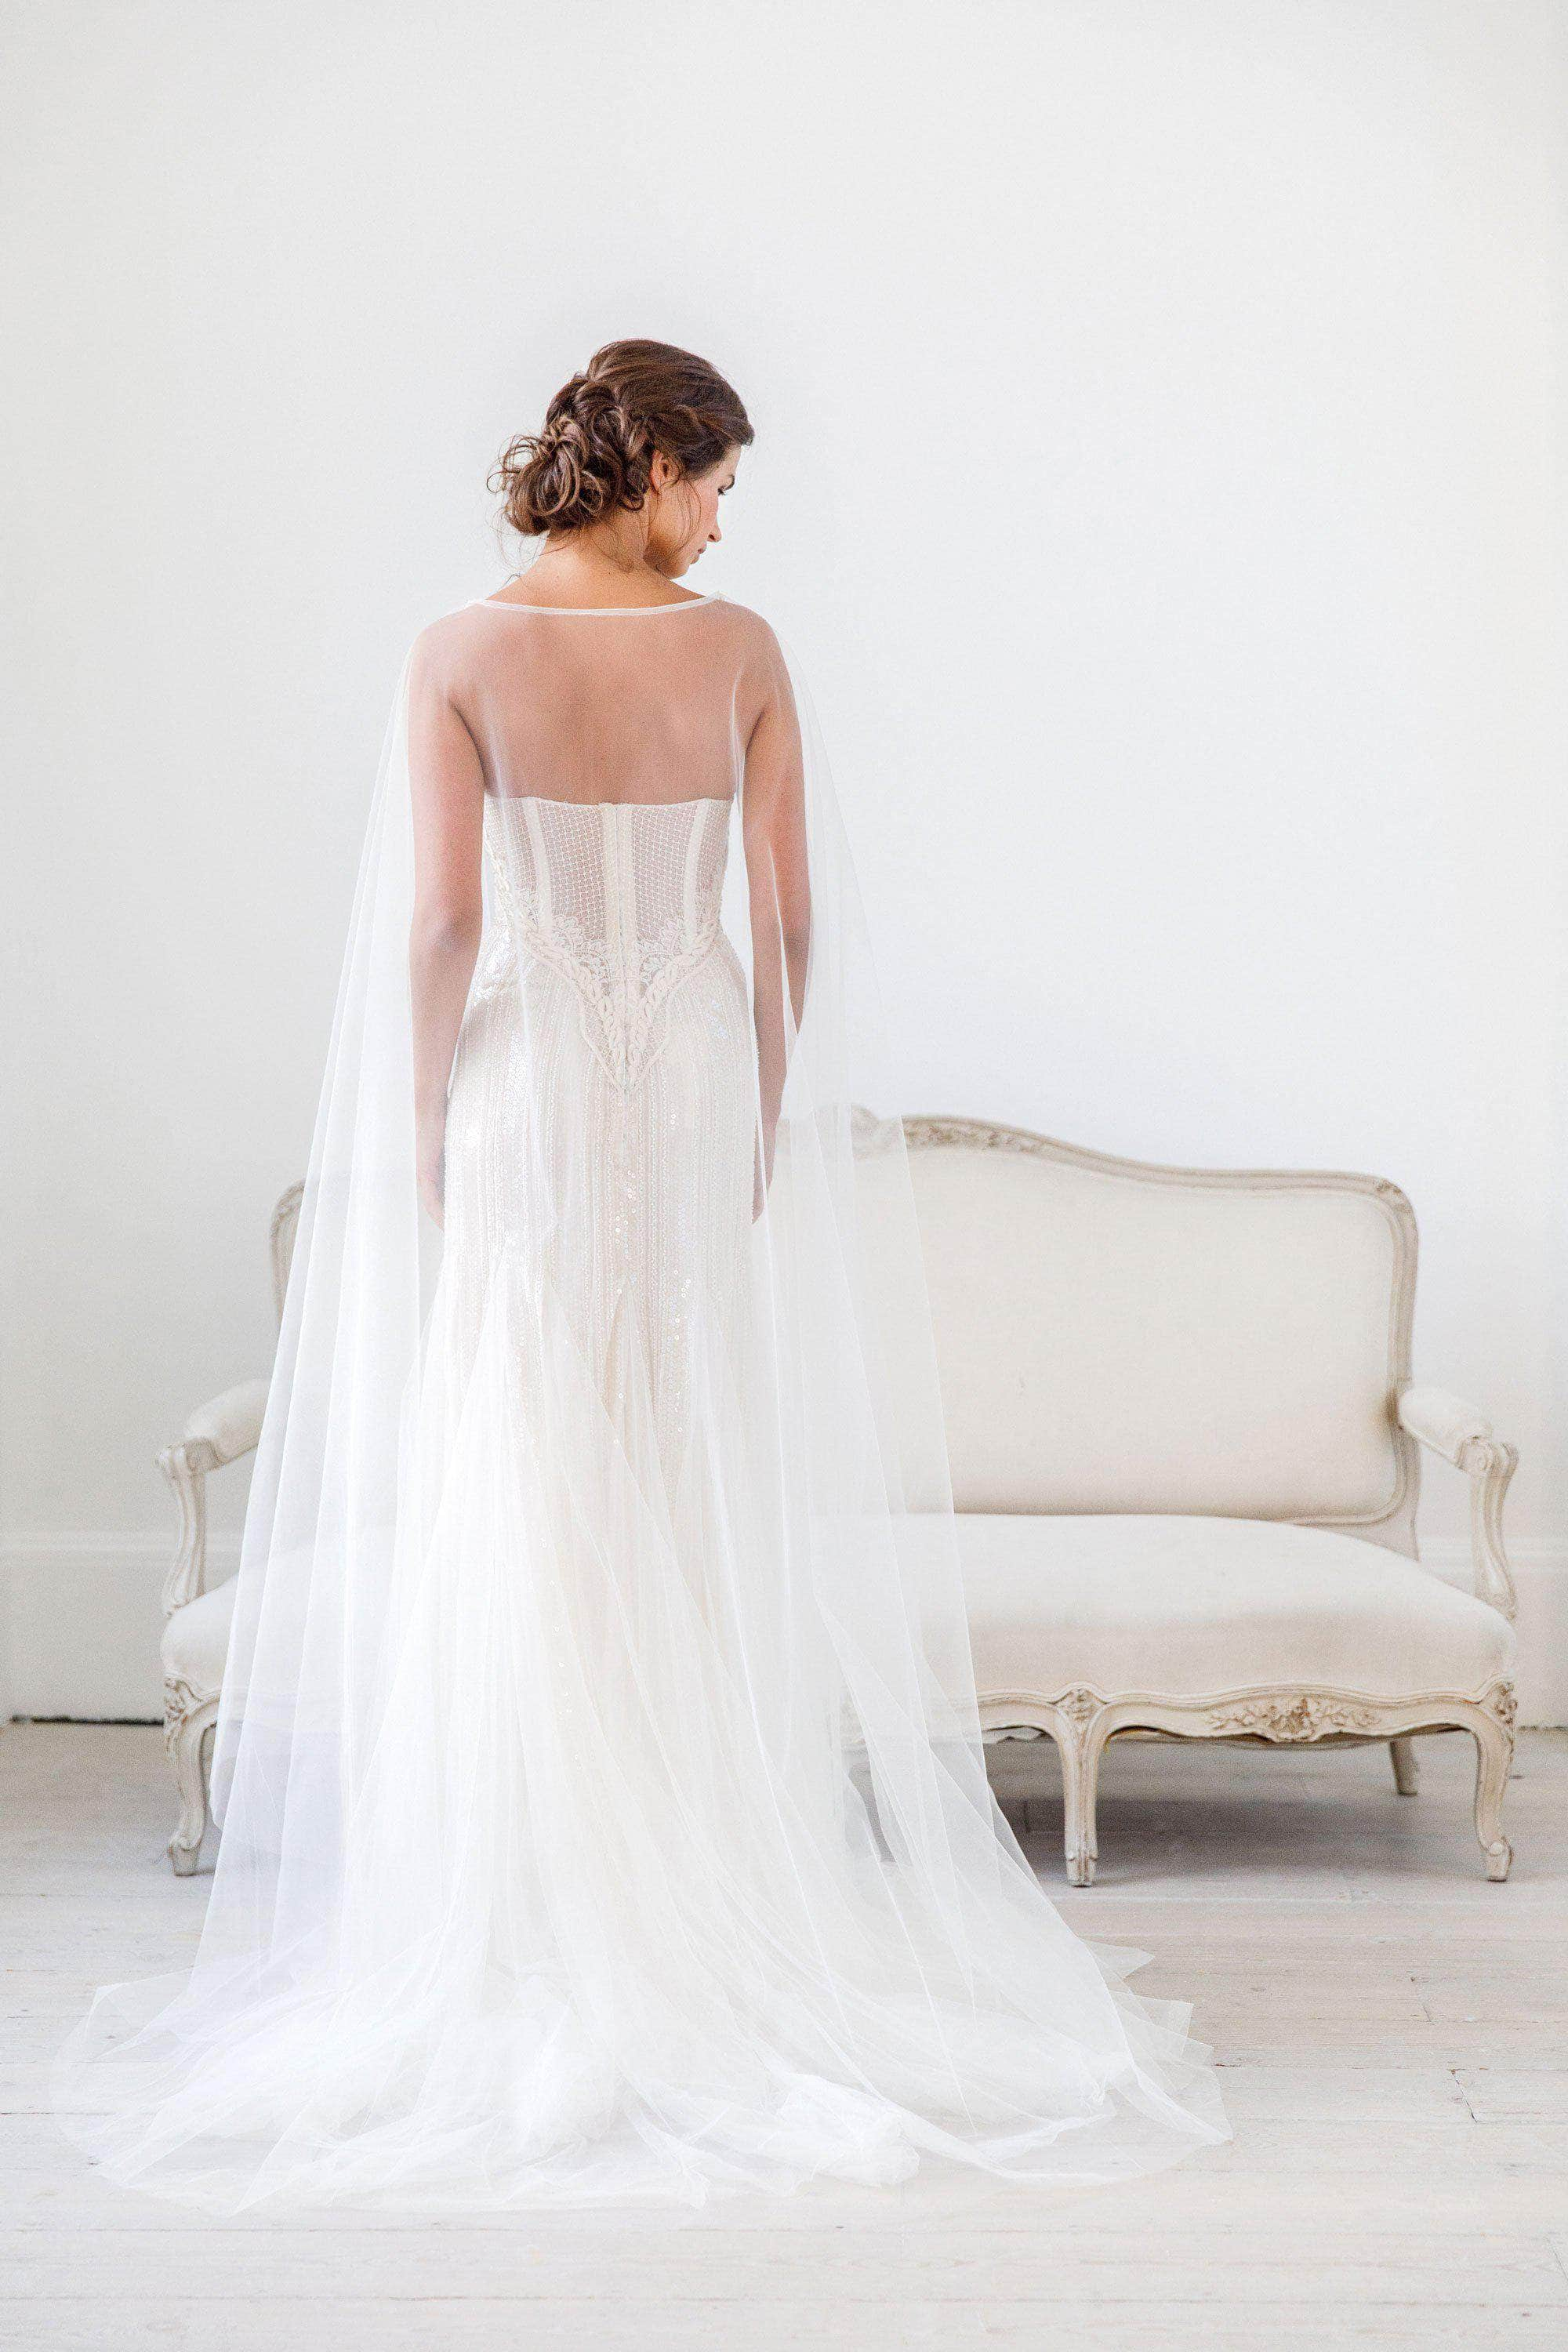 Wedding Veil Tulle wedding cape veil - 'Imogen'